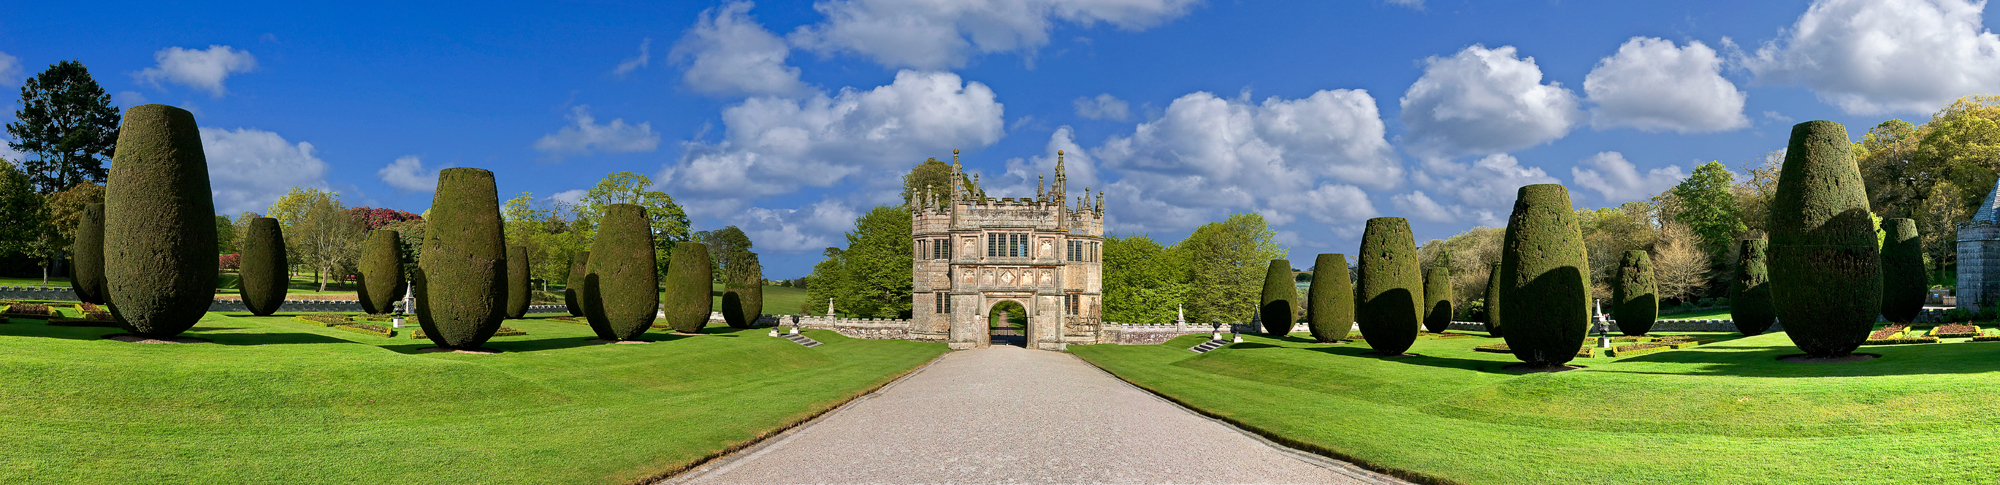 Lanhydrock House and Garden | Collection Panorama Art Italy